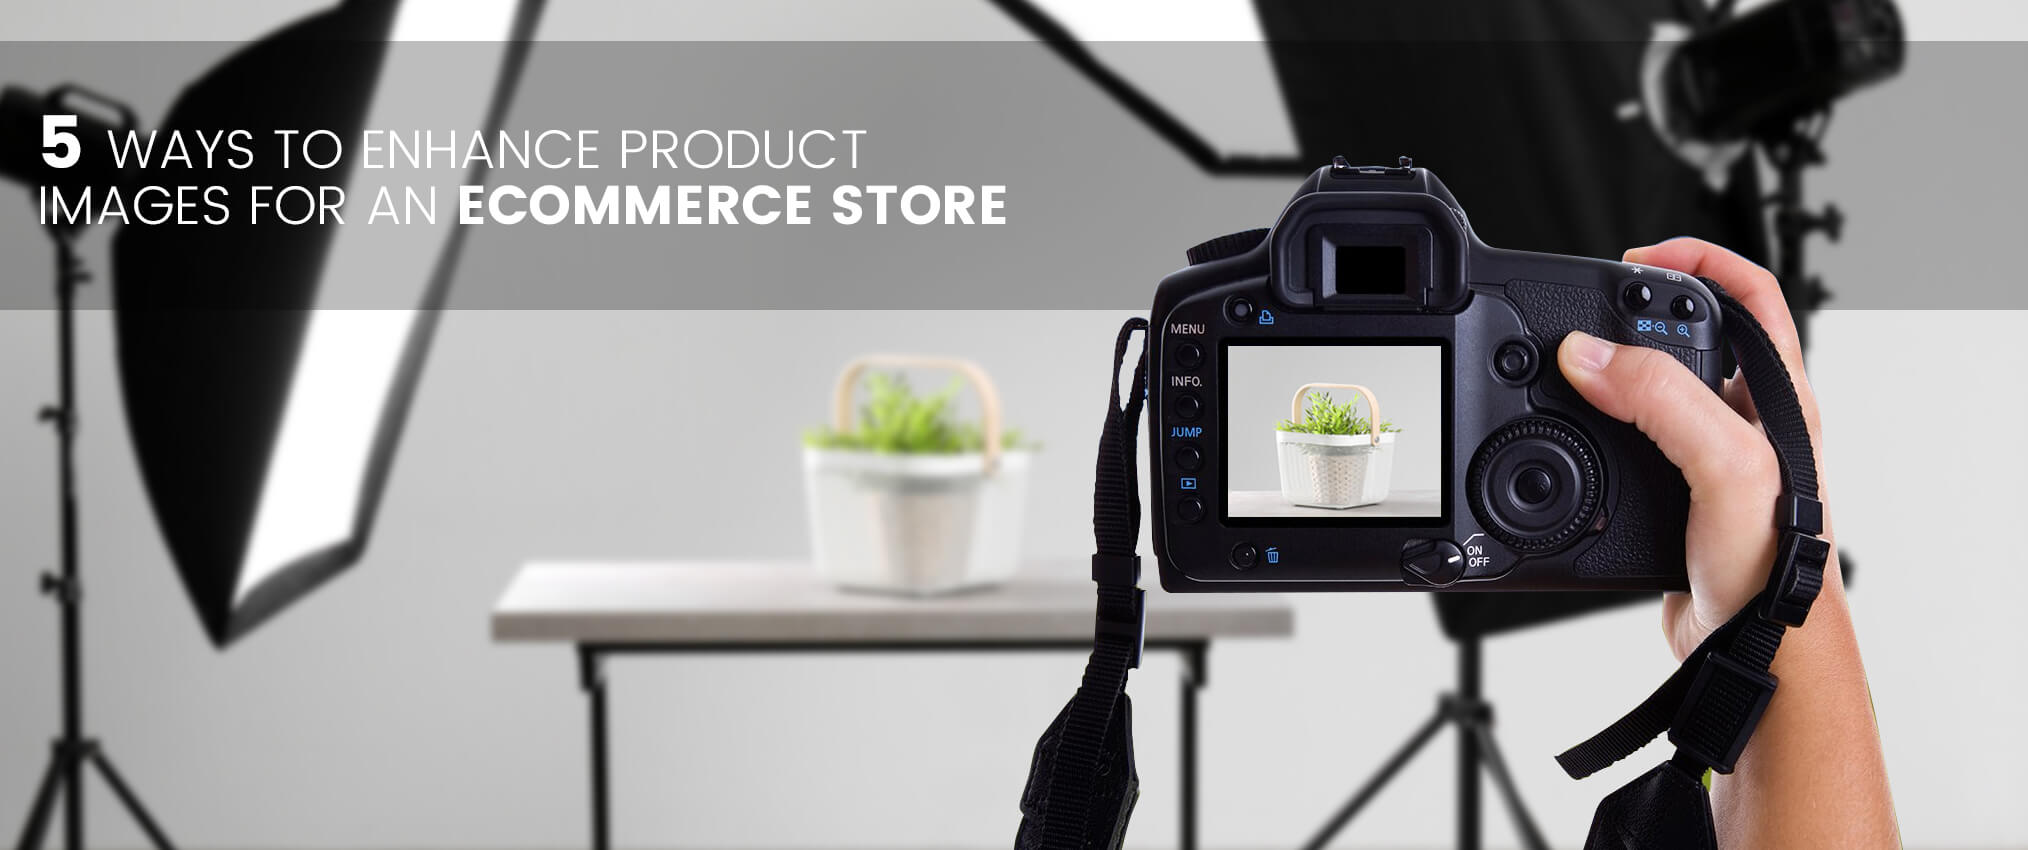 5 Ways to Enhance Product Images for an Ecommerce Store